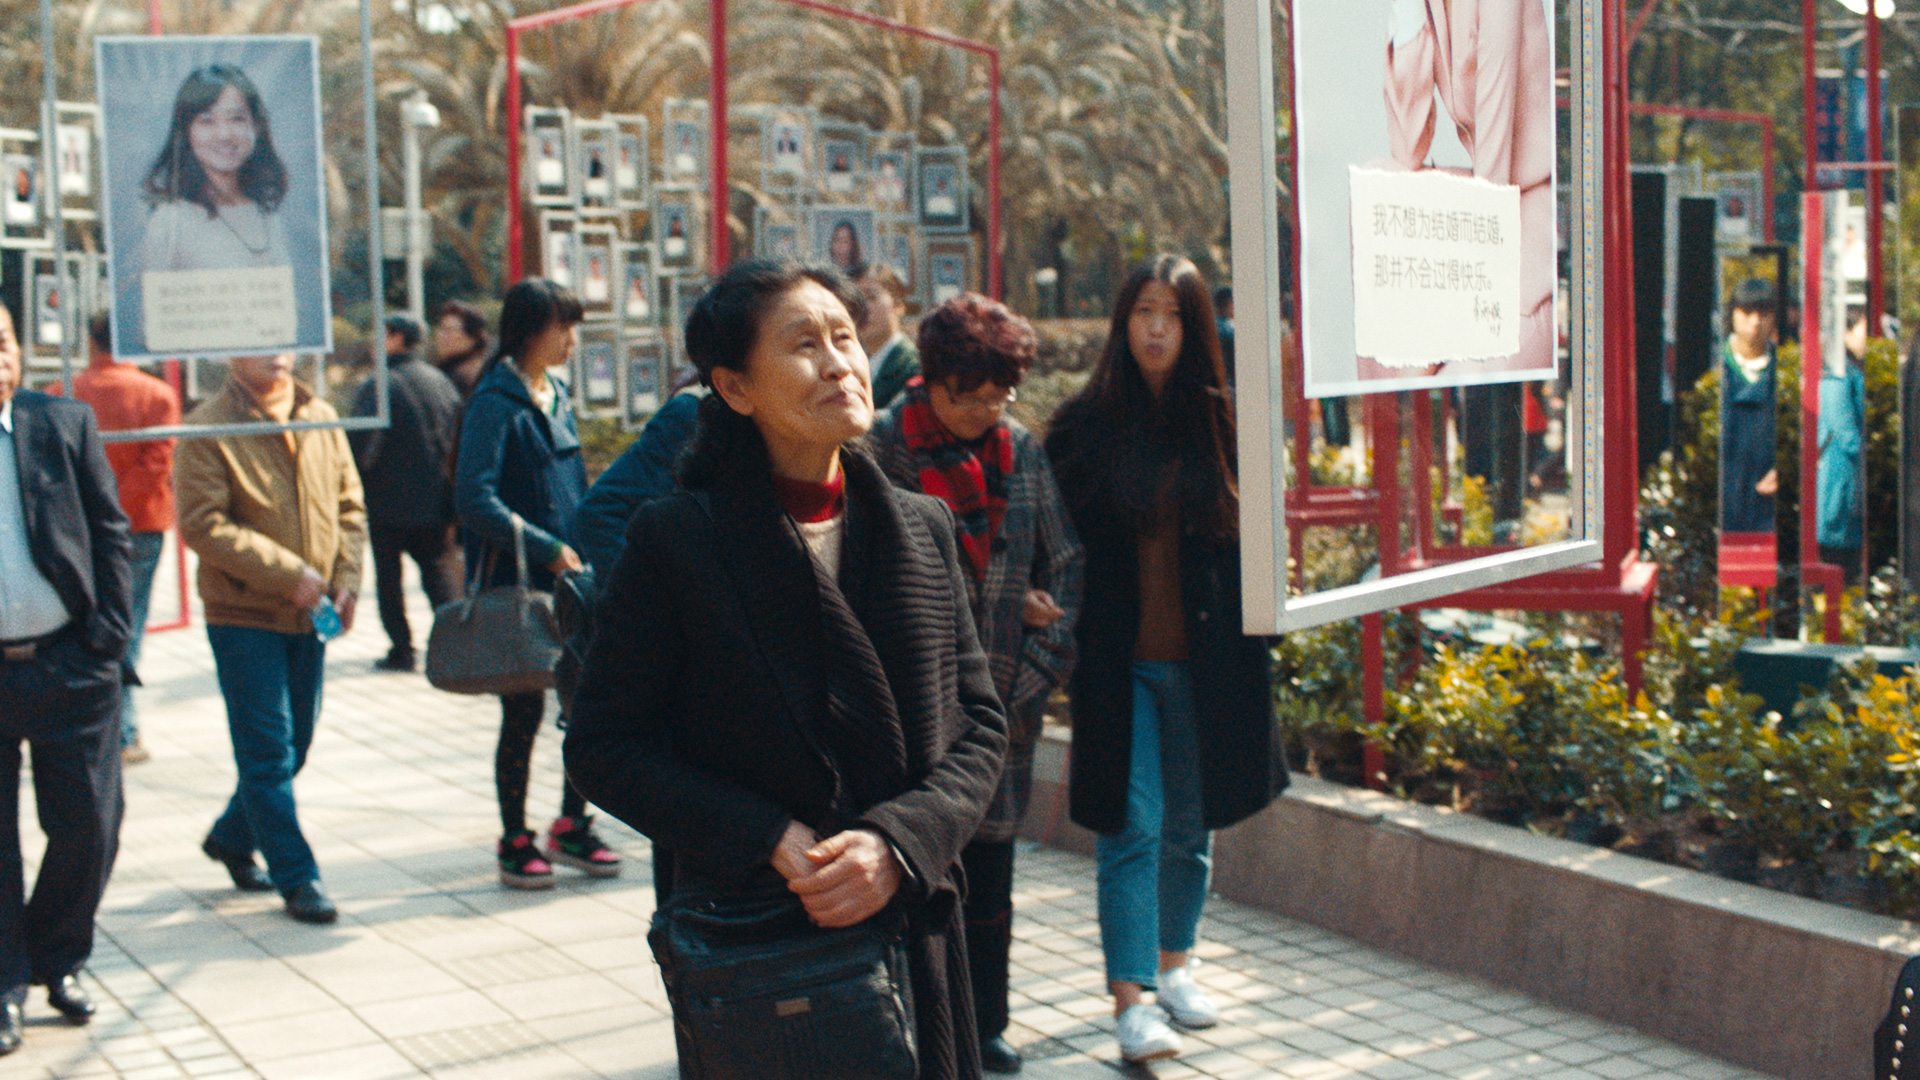 New film supports the right of Chinese women to decide if and when to marry